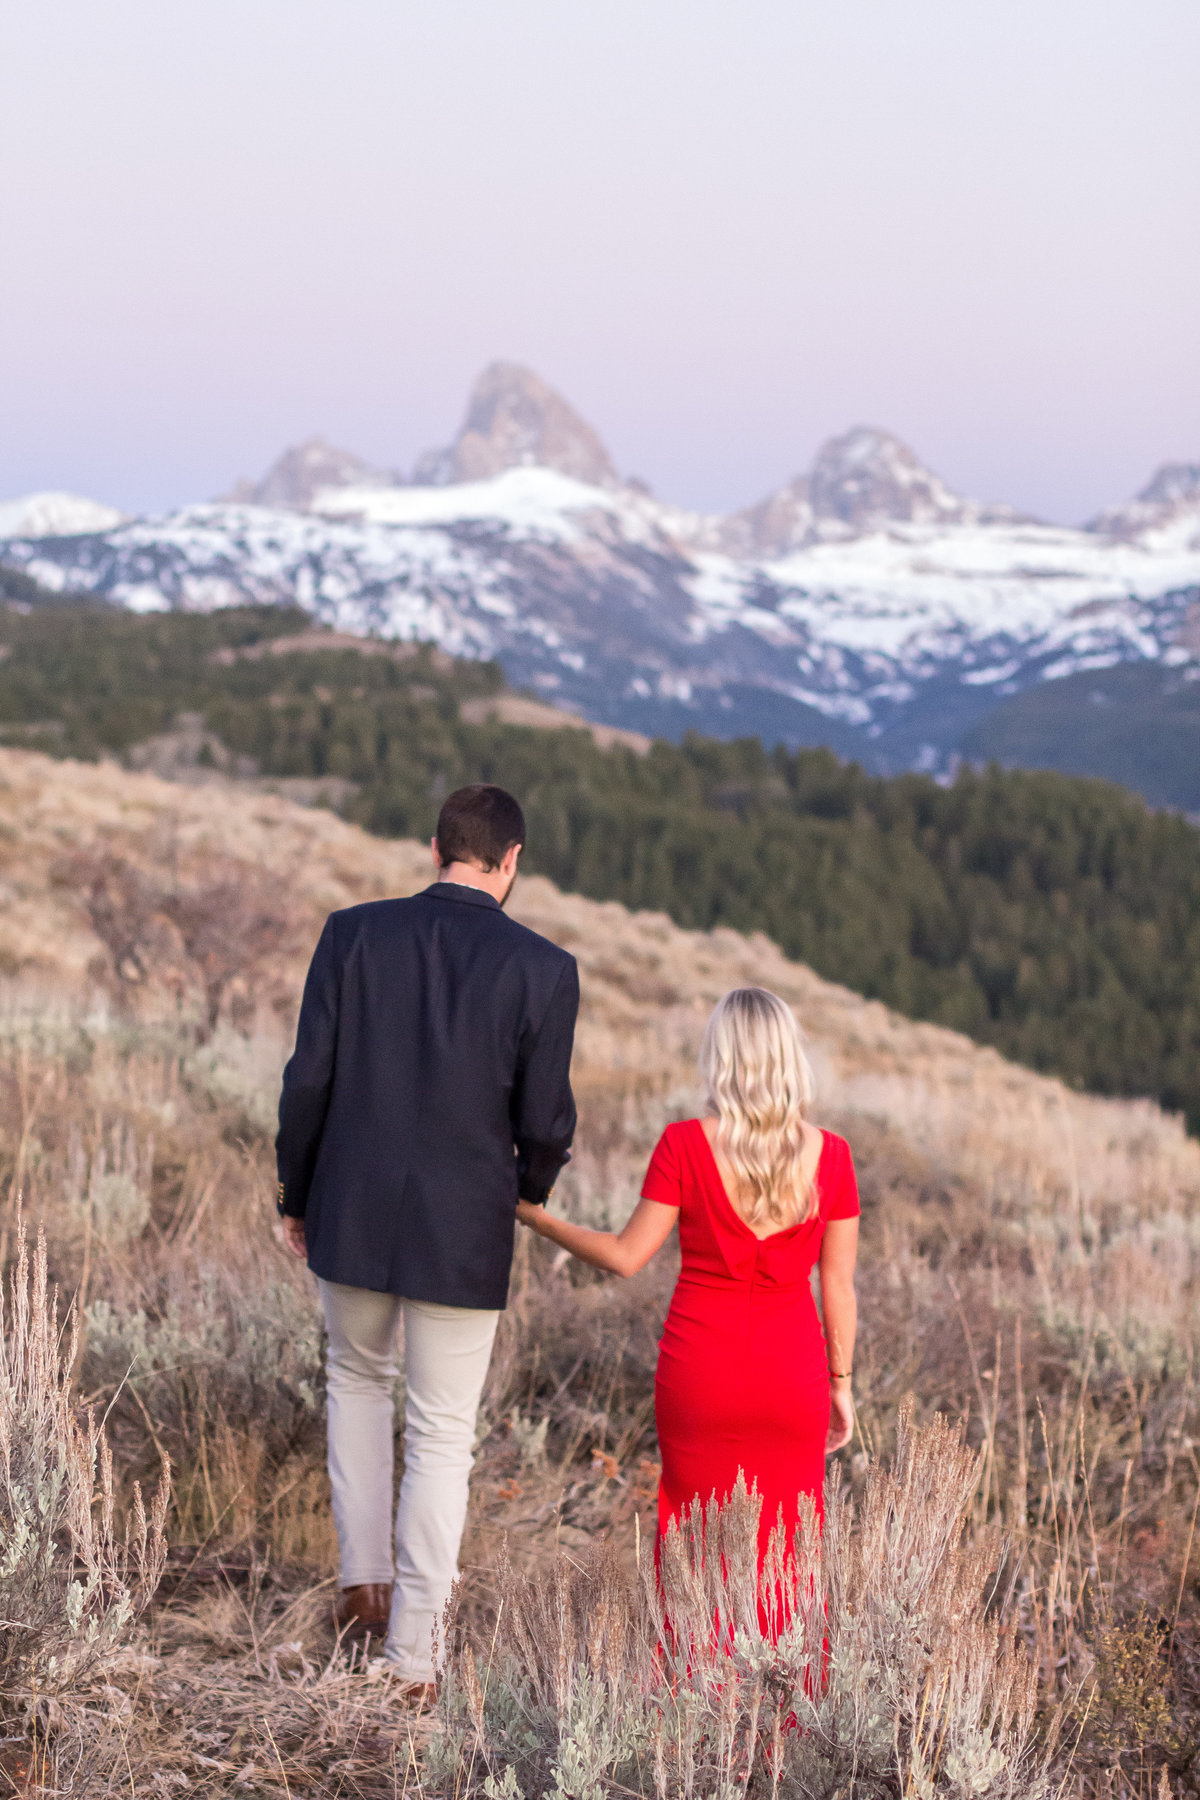 Engagement session, jackson hole, wyoming, alta, teton canyon, couples photos, Grand Targhee Resort, overlook